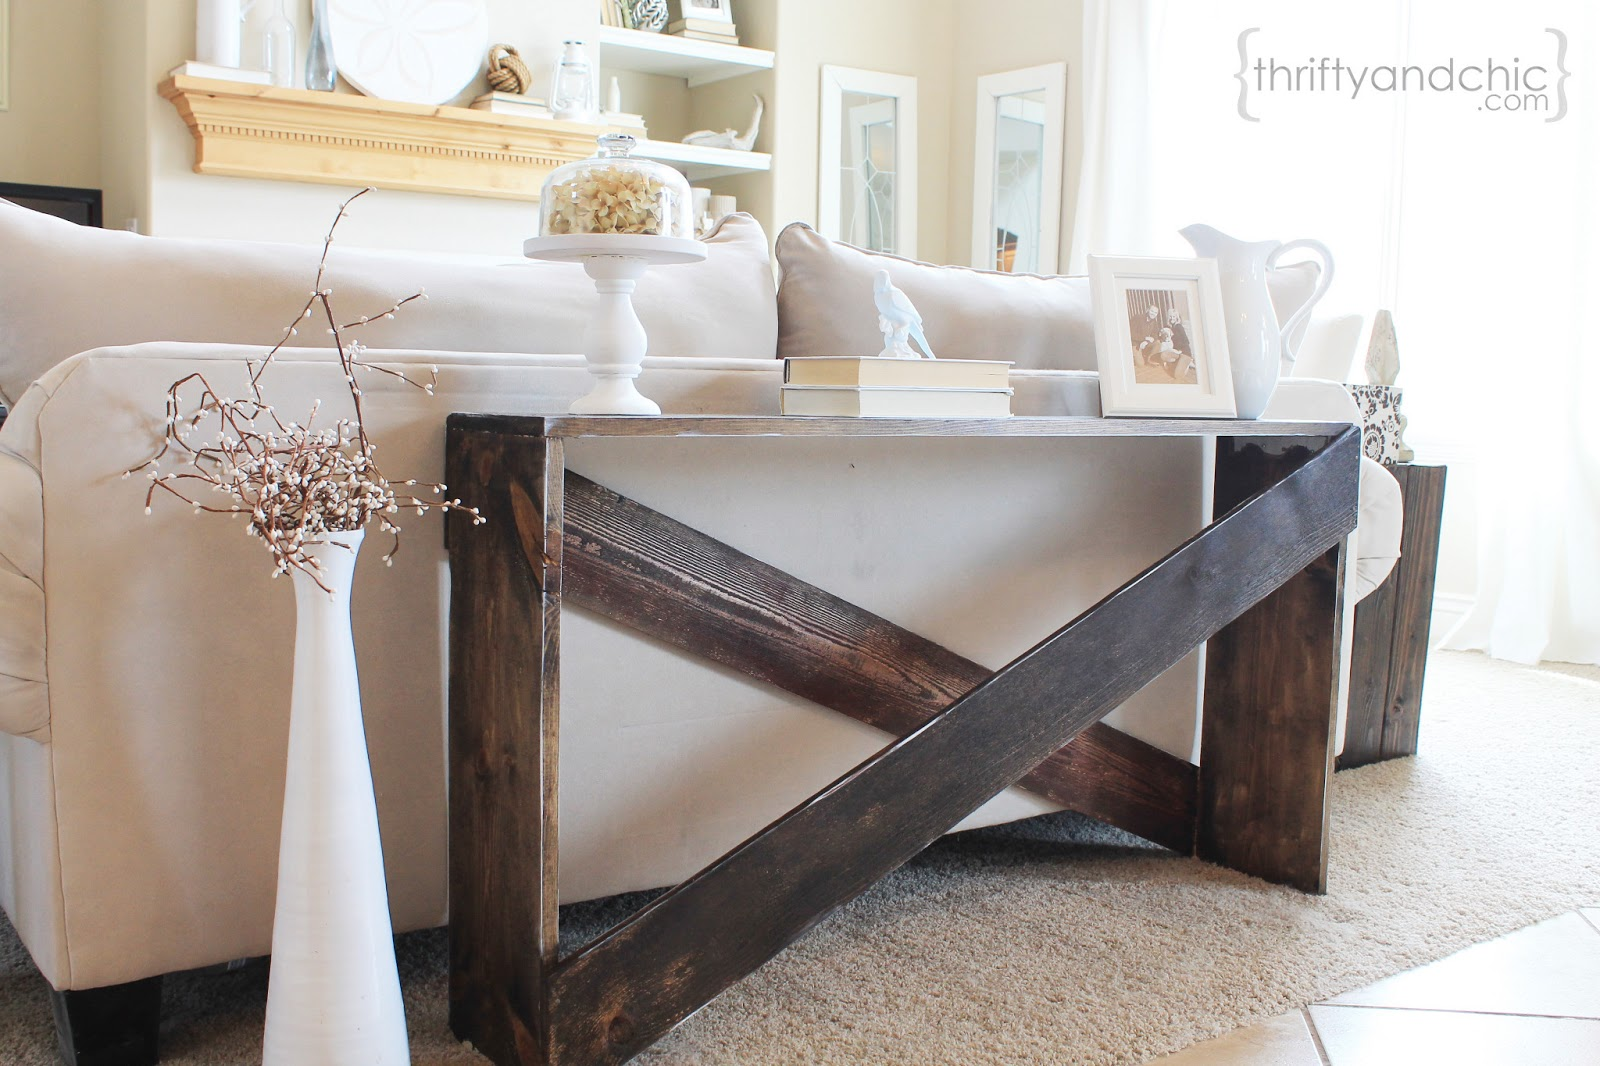 Thrifty and chic diy projects and home decor for Side table for sectional sofa